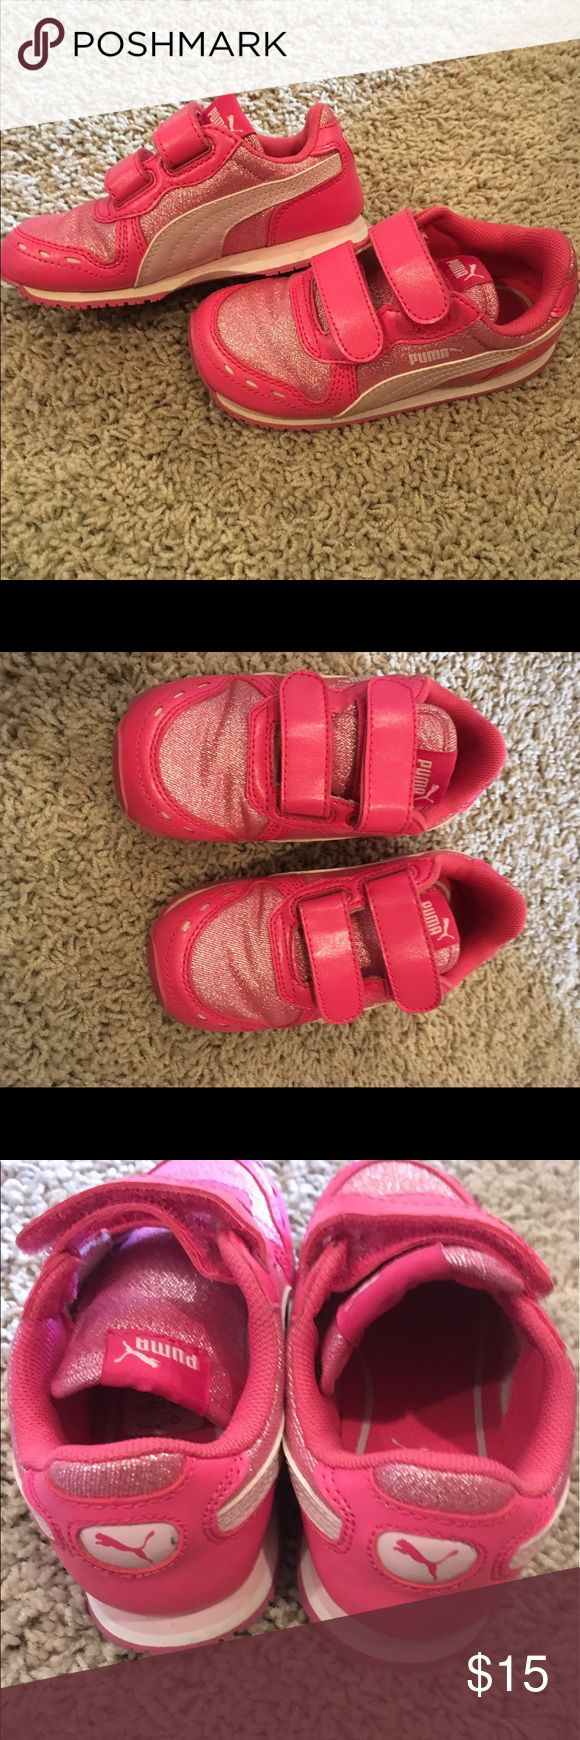 Pink Pumas size 8 Great condition, sparkly pink Pumas in size 8 Puma Shoes Sneakers